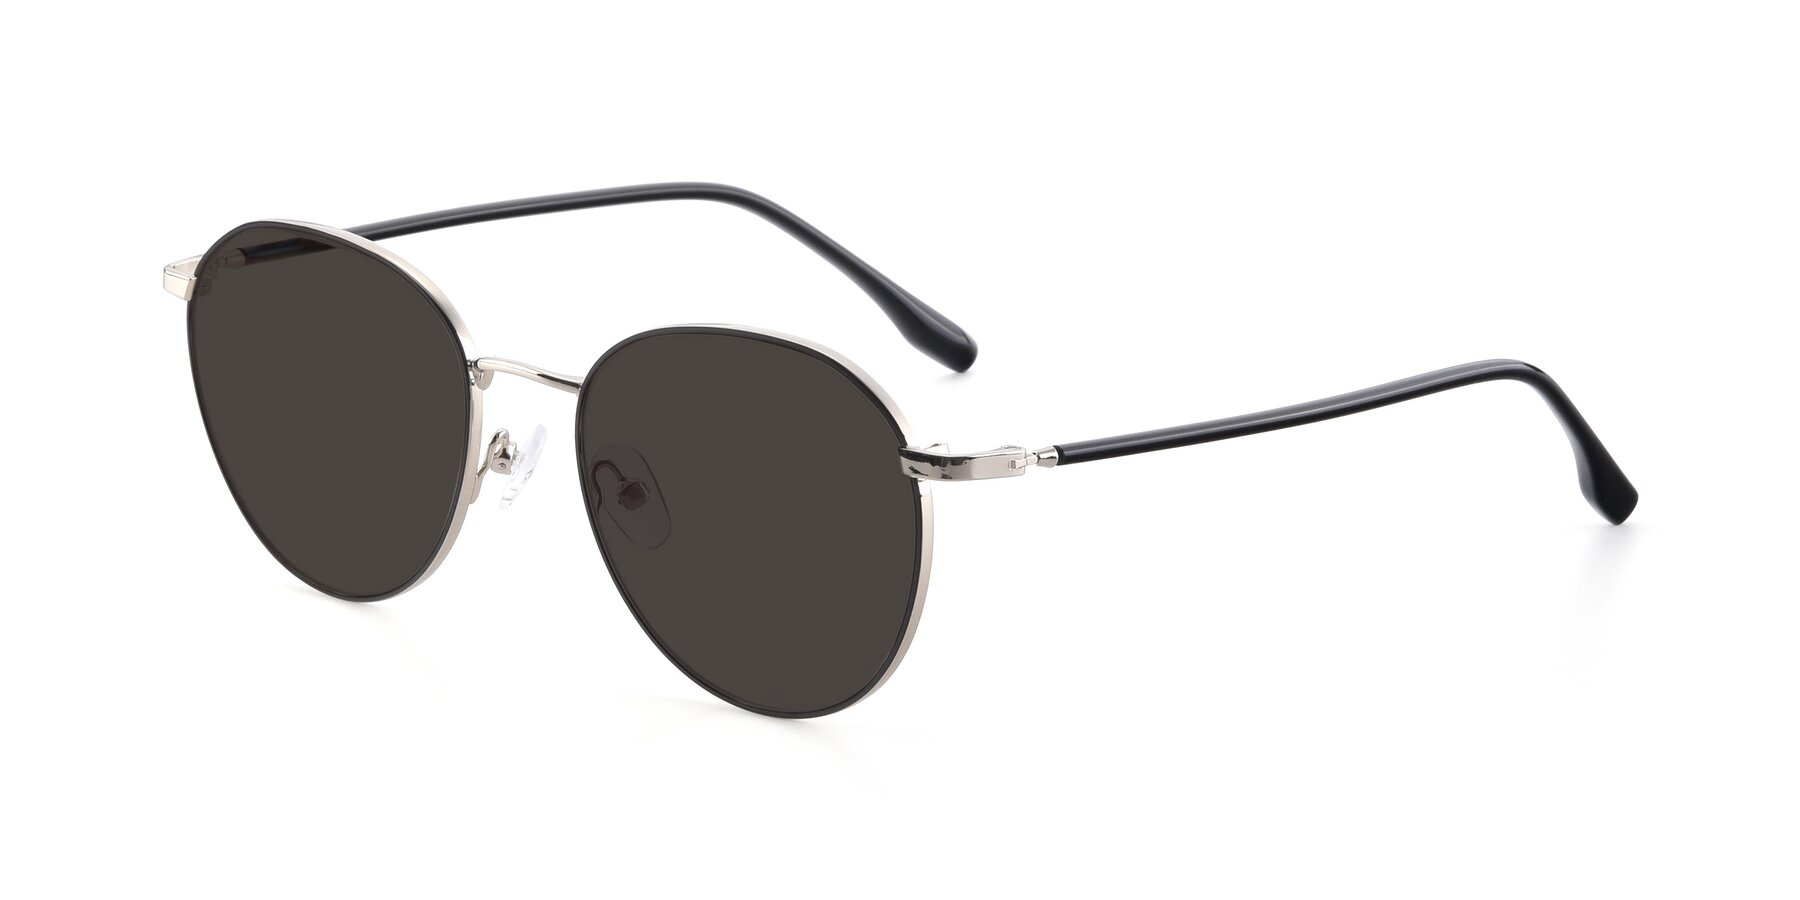 Angle of 9553 in Black-Silver with Gray Tinted Lenses